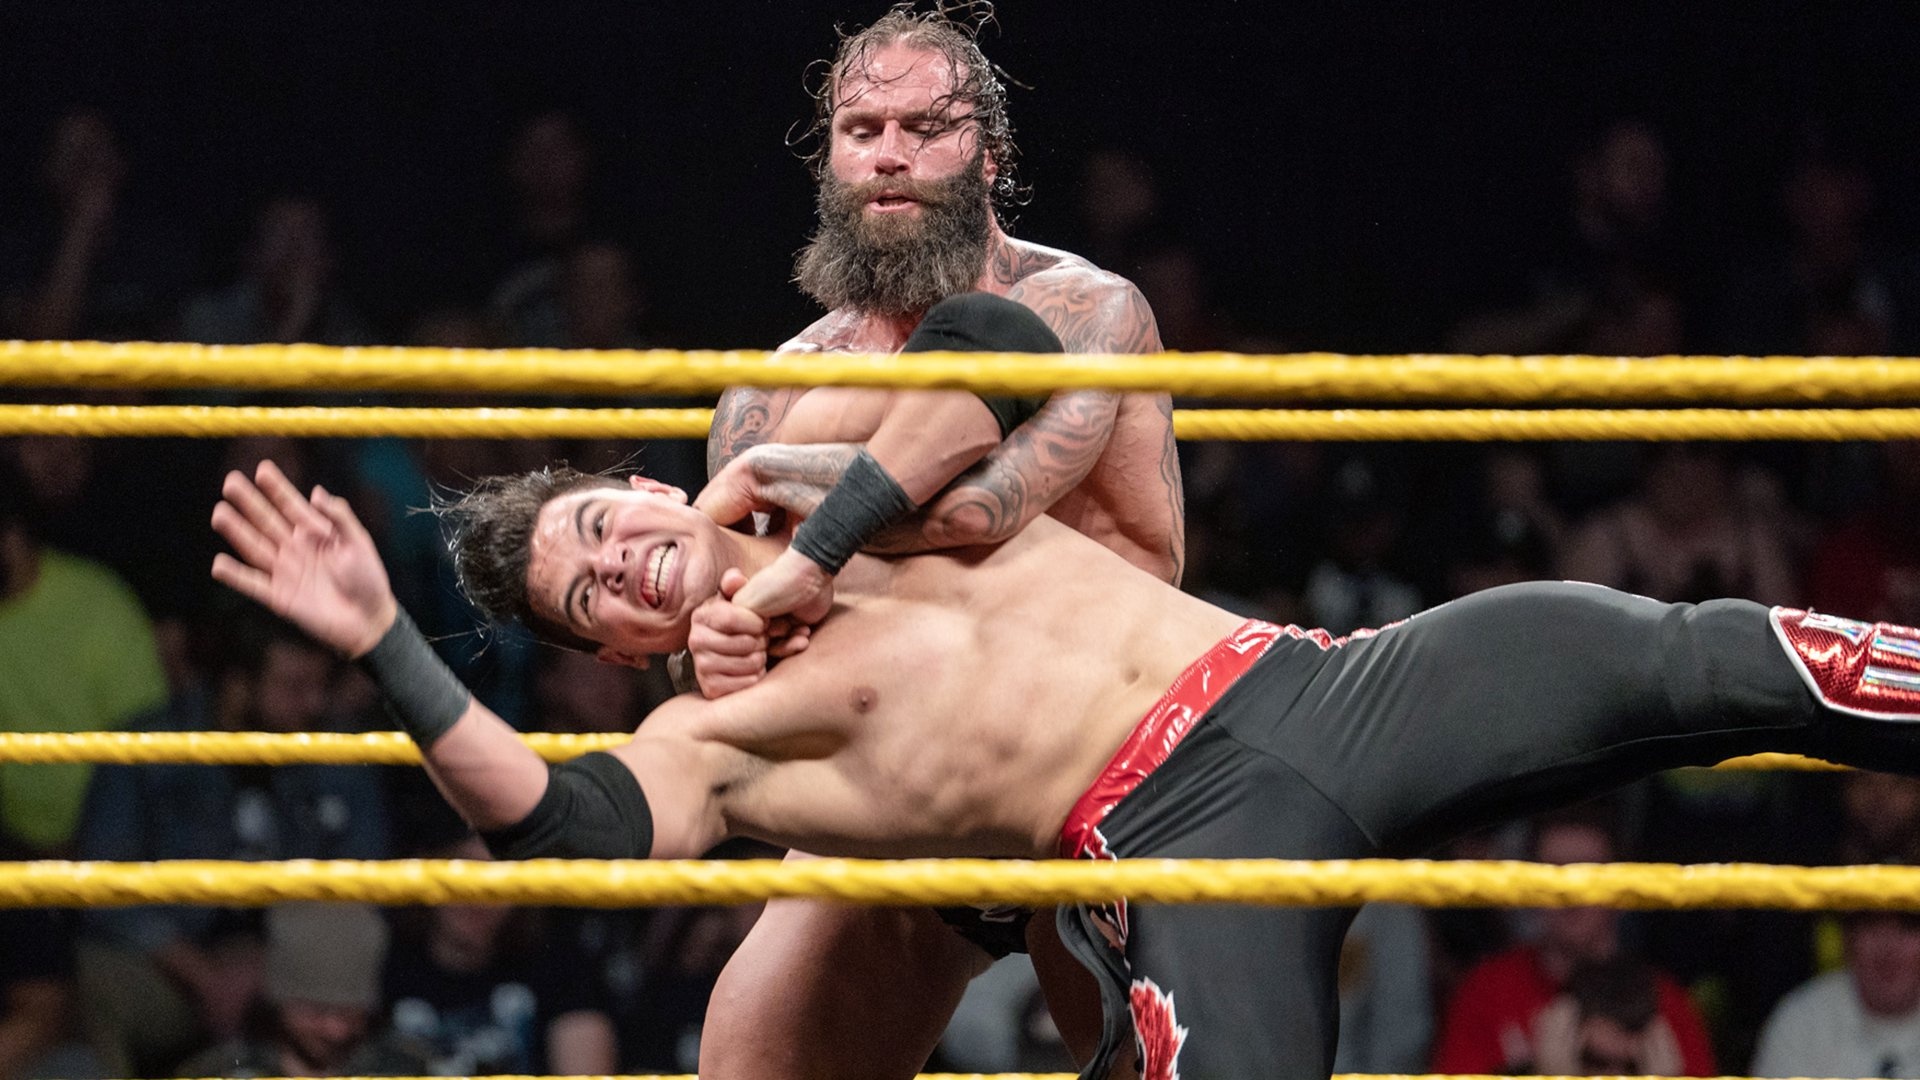 Humberto Carrillo, Oney Lorcan & Danny Burch vs. Forgotten Sons: WWE NXT, 1er Mai 2019